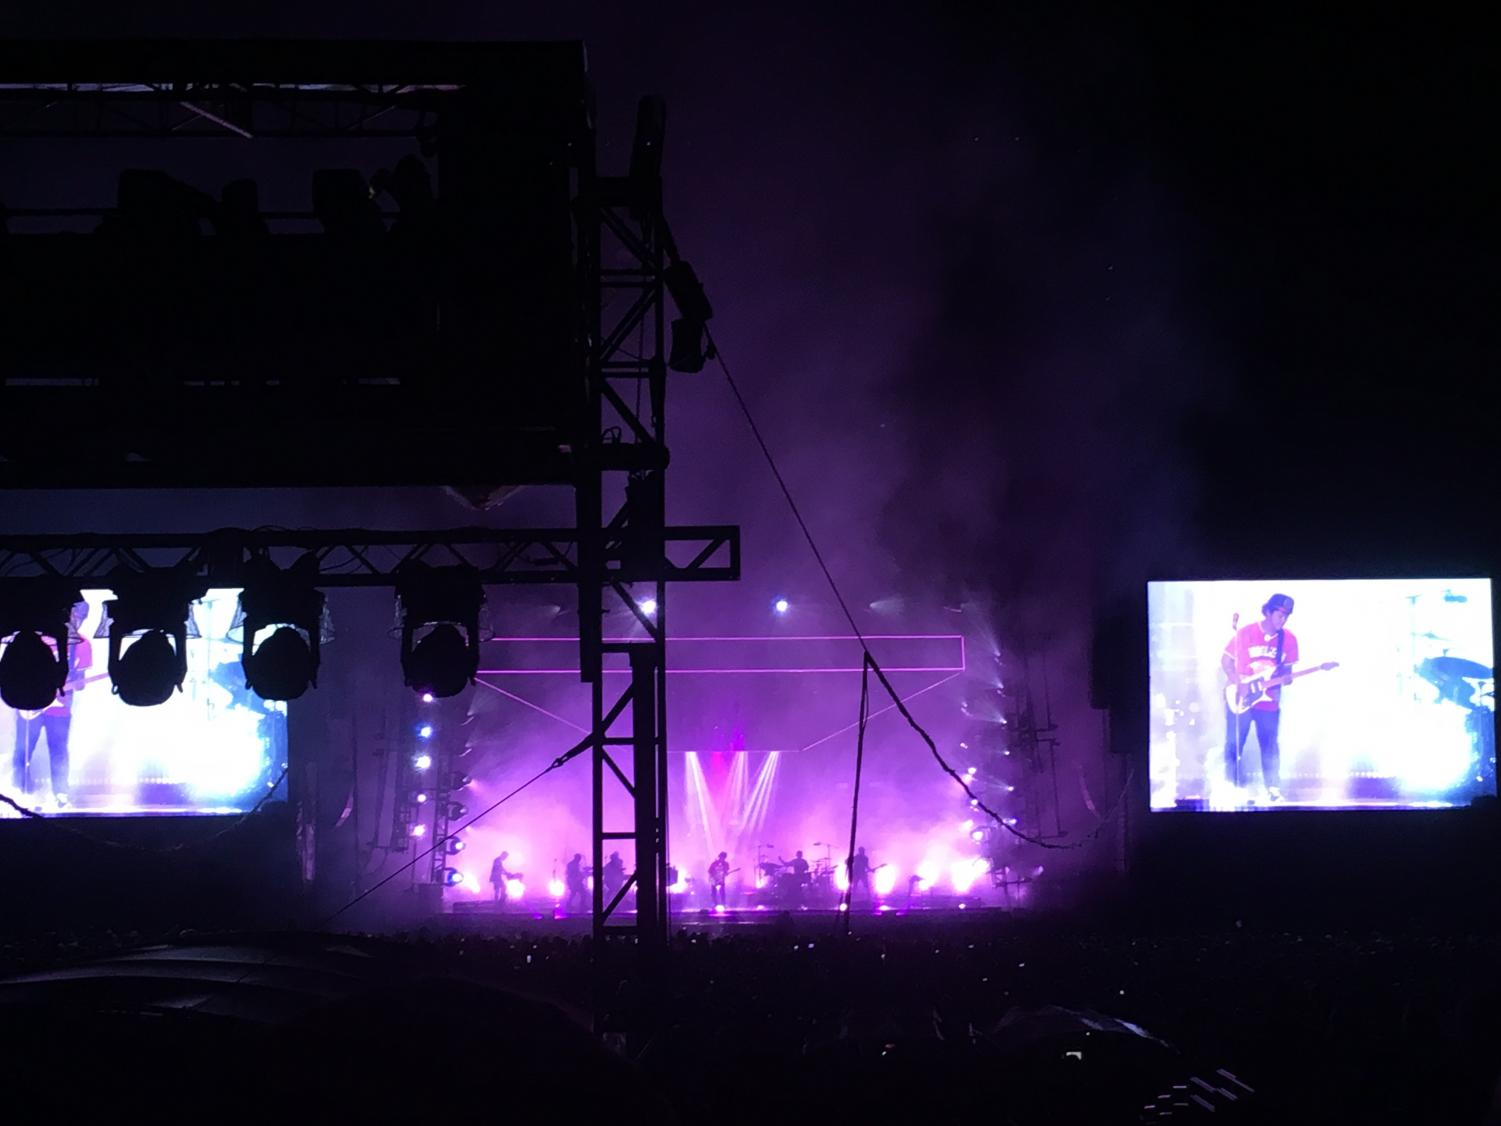 Bruno+Mars+plays+his+electric+guitar+and+impresses+the+audience+with+his+ability.